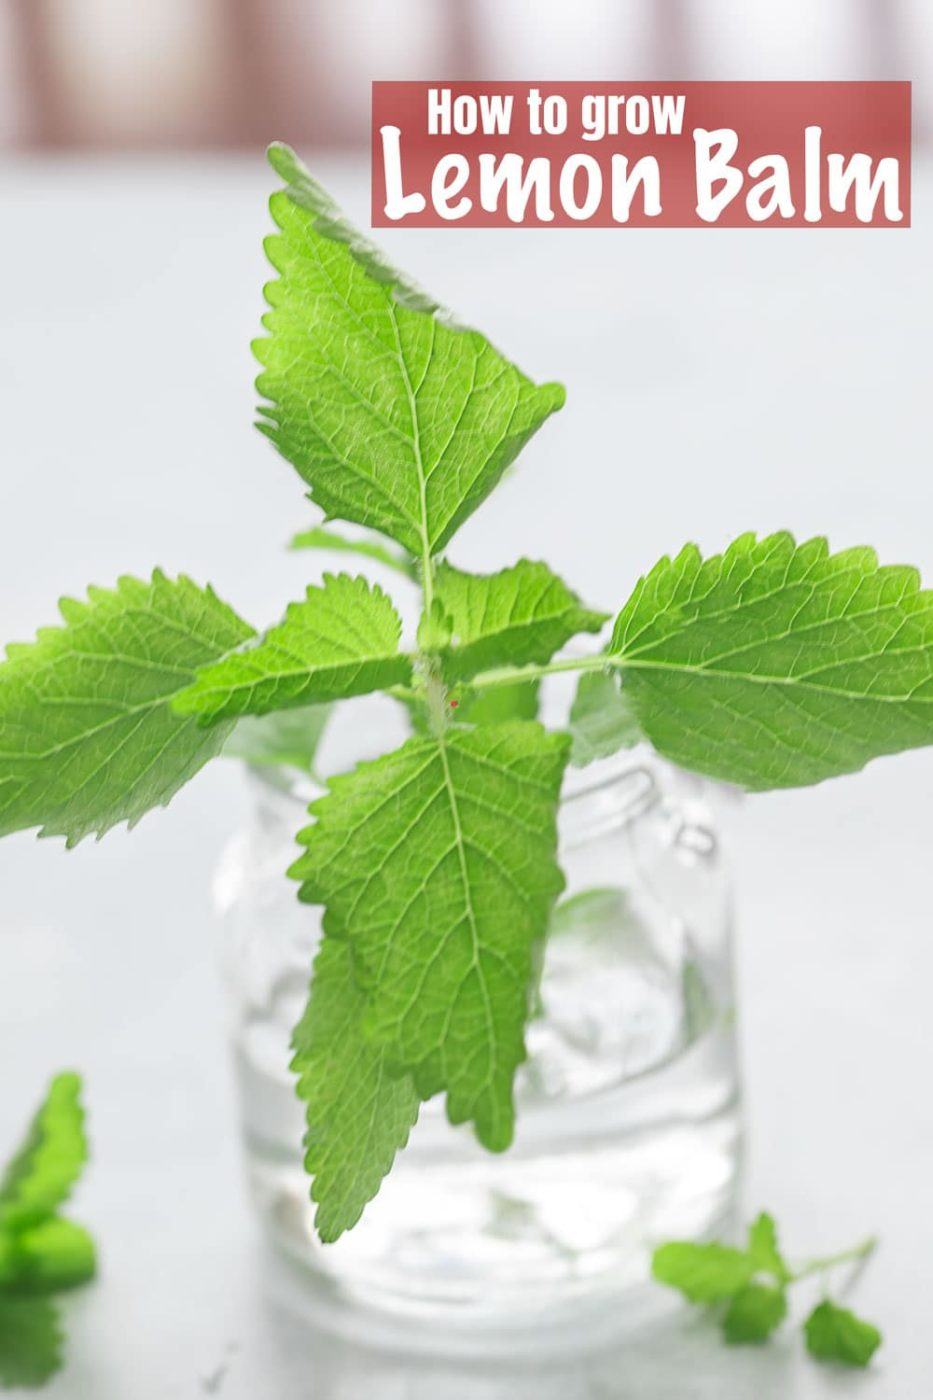 closeup view of lemon balm in a glass bottle with water